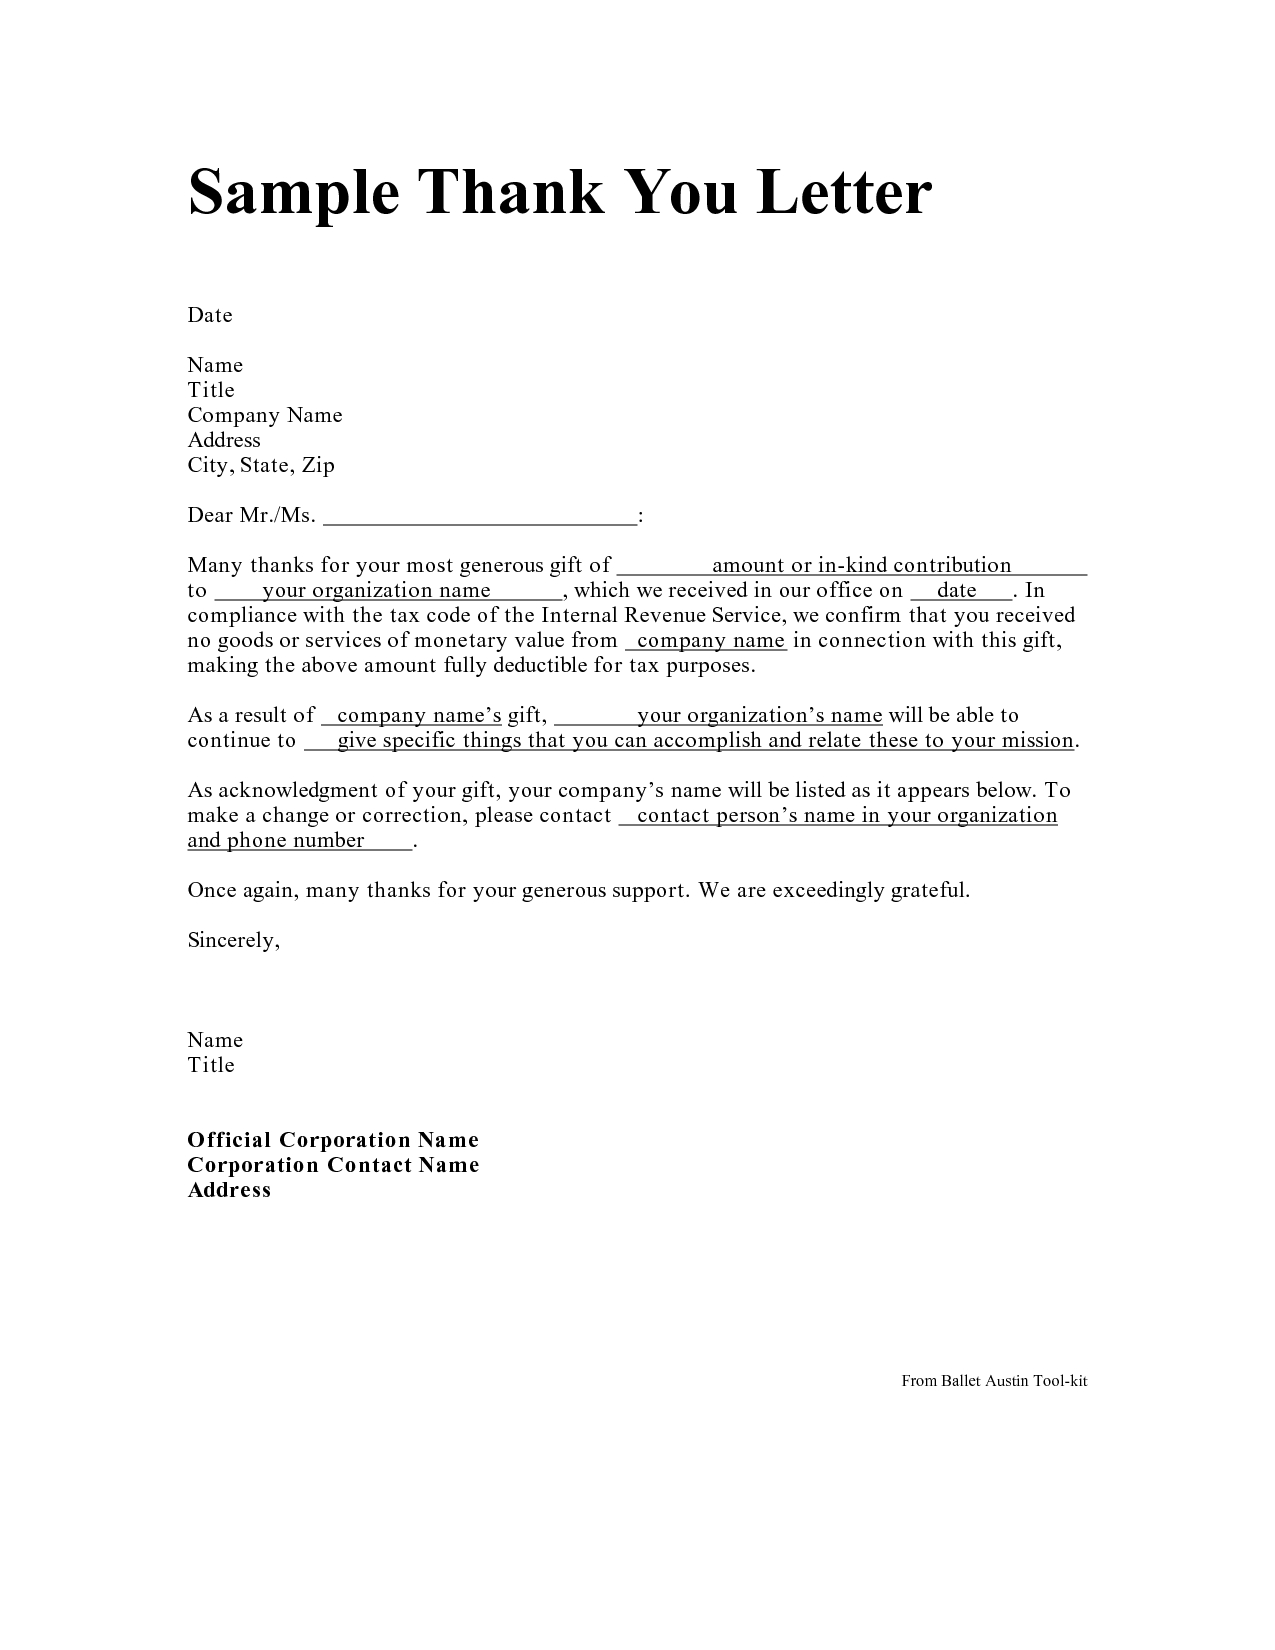 tax deductible donation thank you letter template samples letter